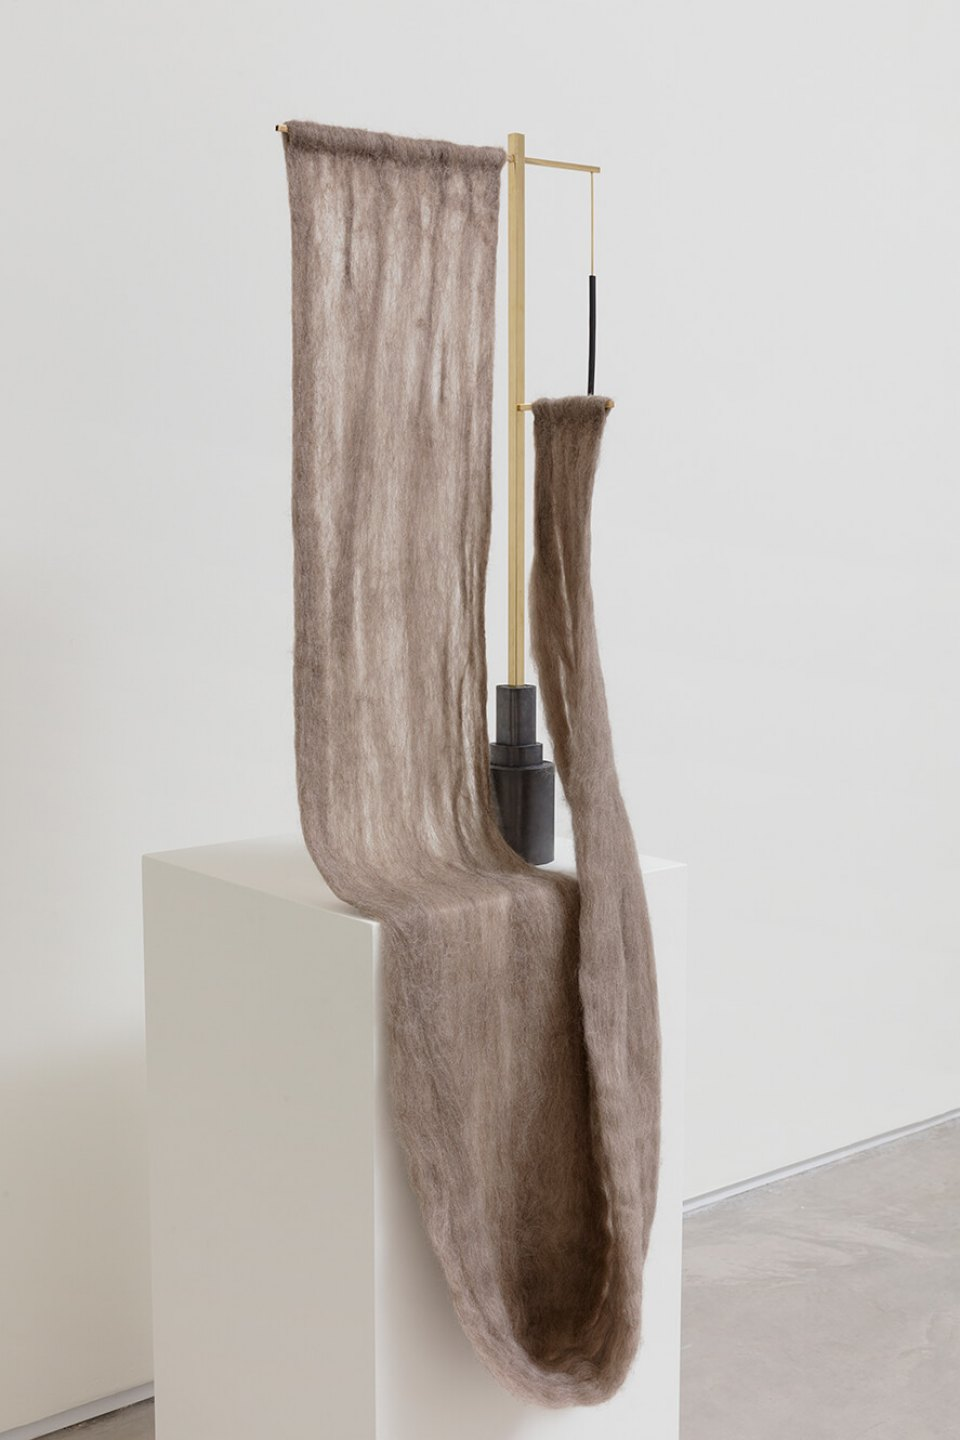 Paloma Bosquê, <em>Cross</em>, 2016, wool felted by hand, brass rods and charcoal, 120 × 14 × 38,5 cm - Mendes Wood DM